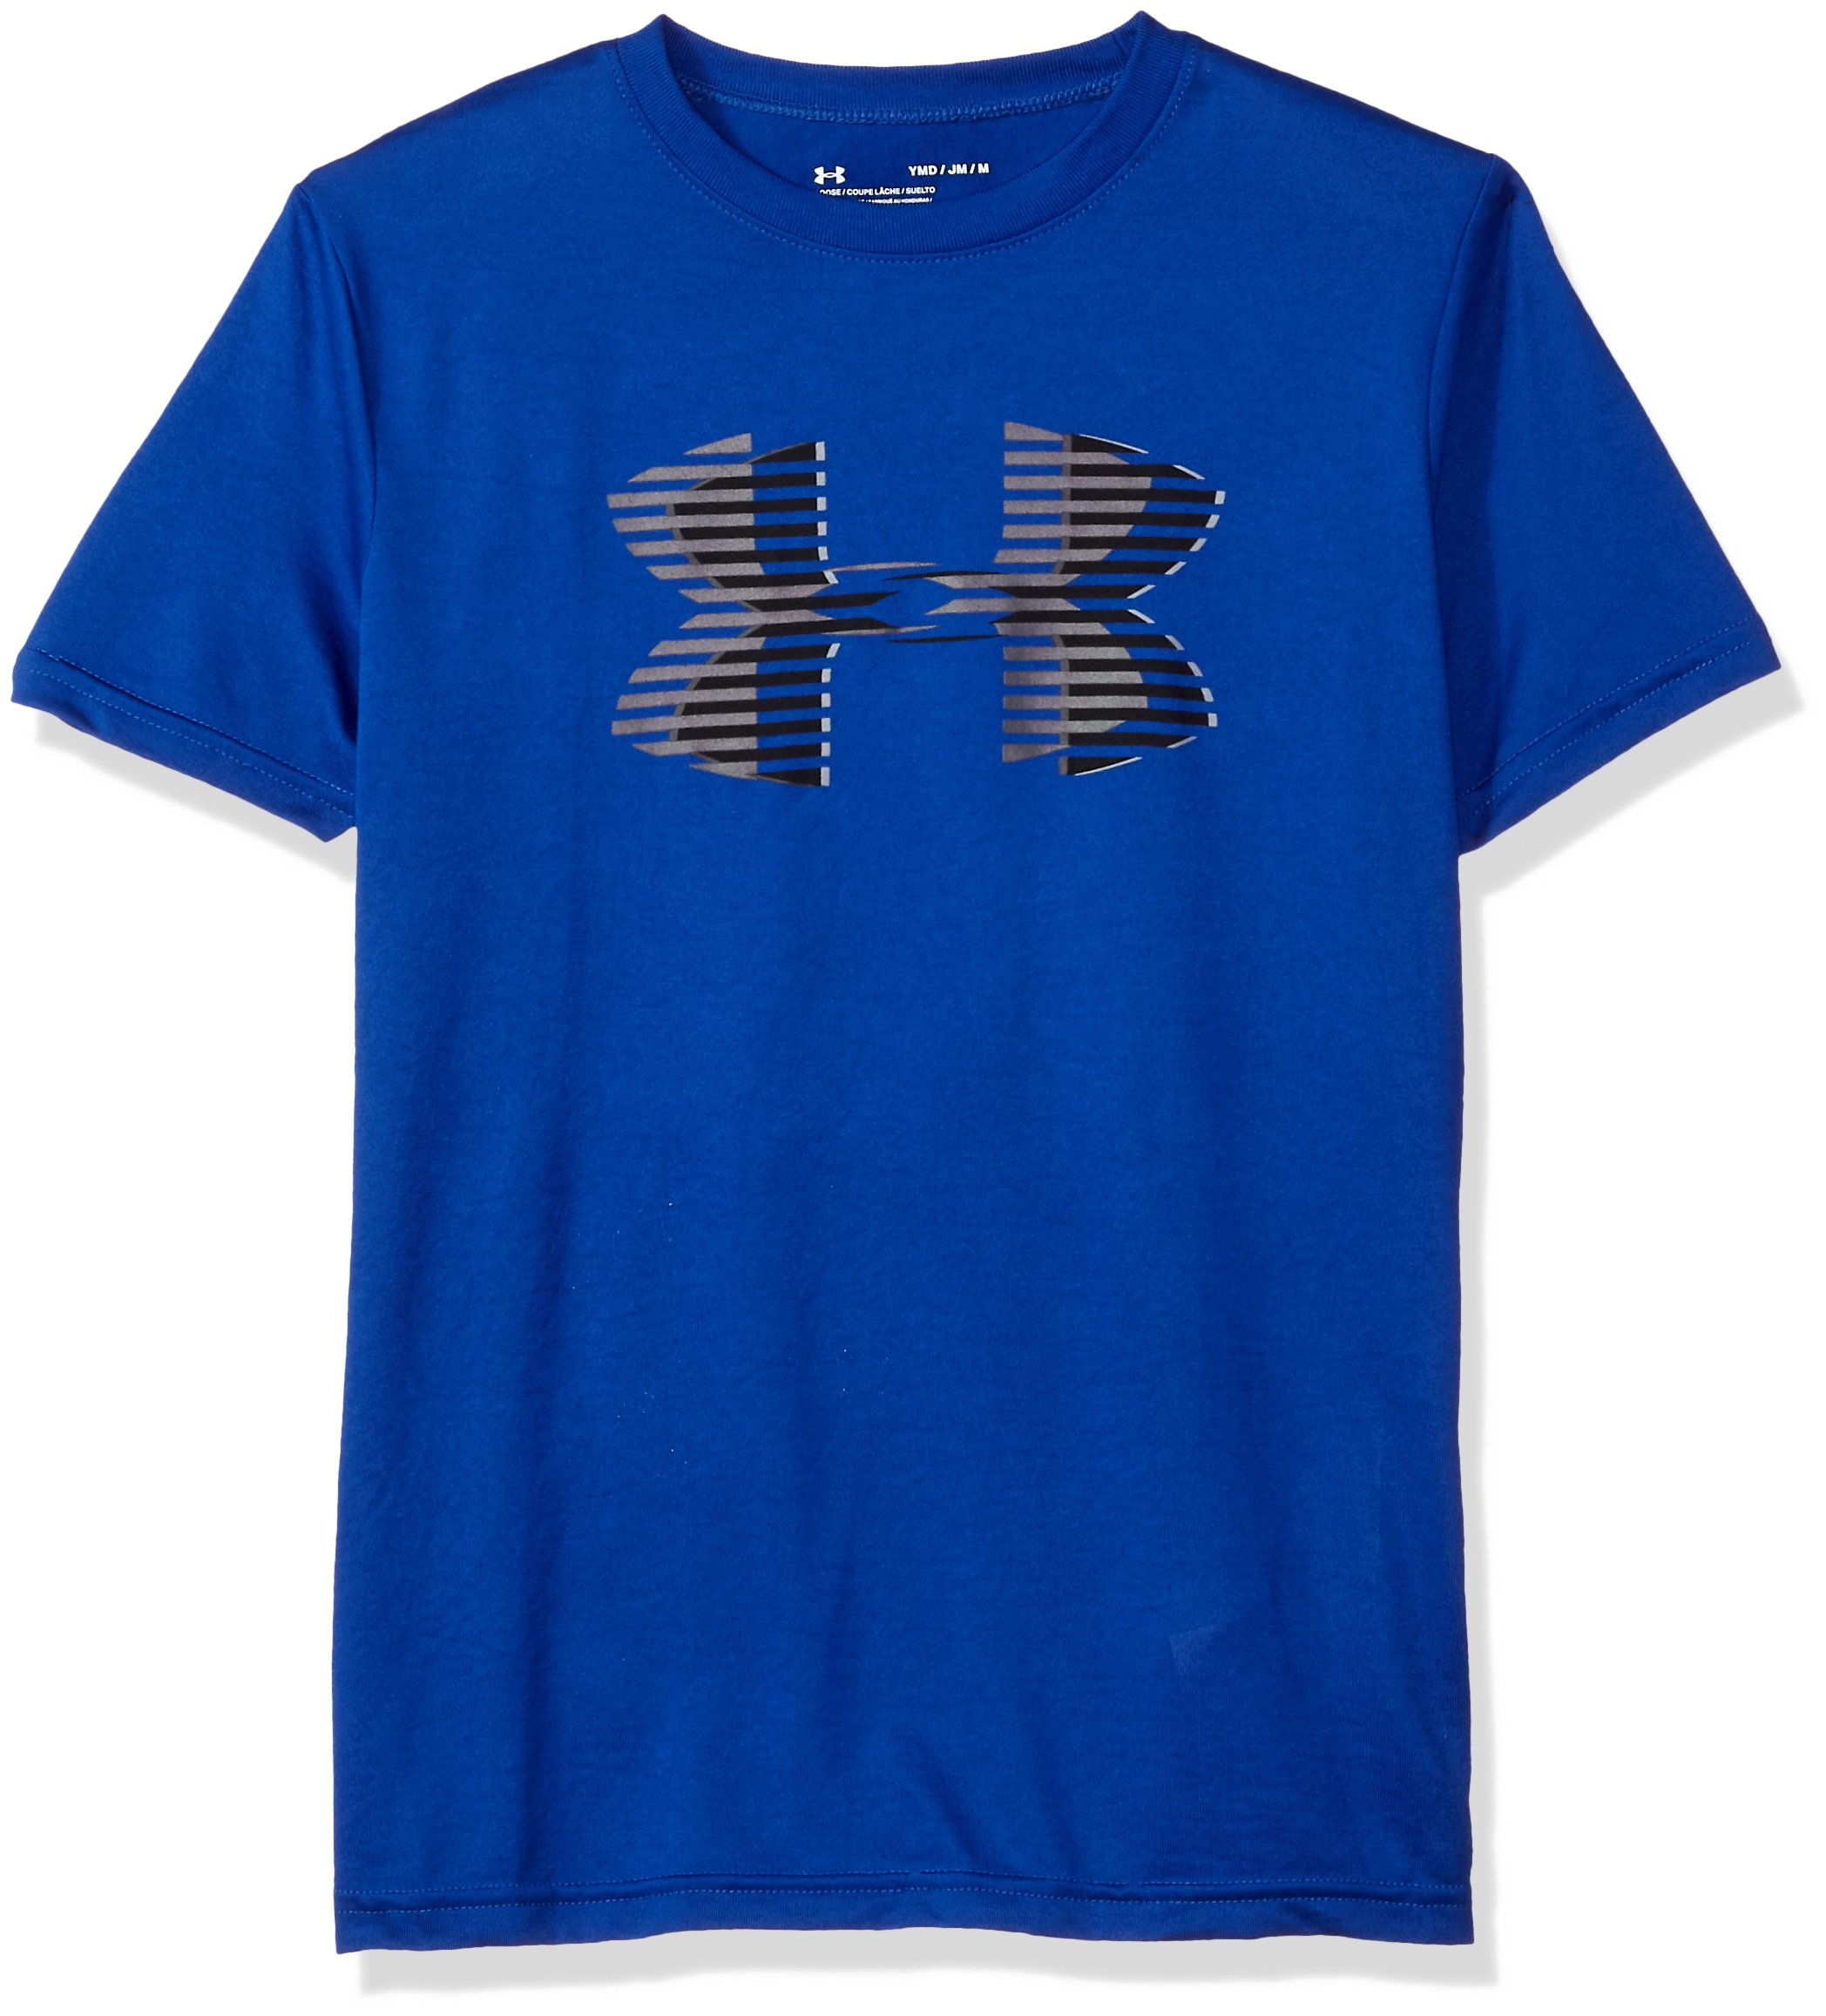 Under Armour Boys' Tech Big Logo Solid T-Shirt, Royal (400)/Graphite, Youth X-Small